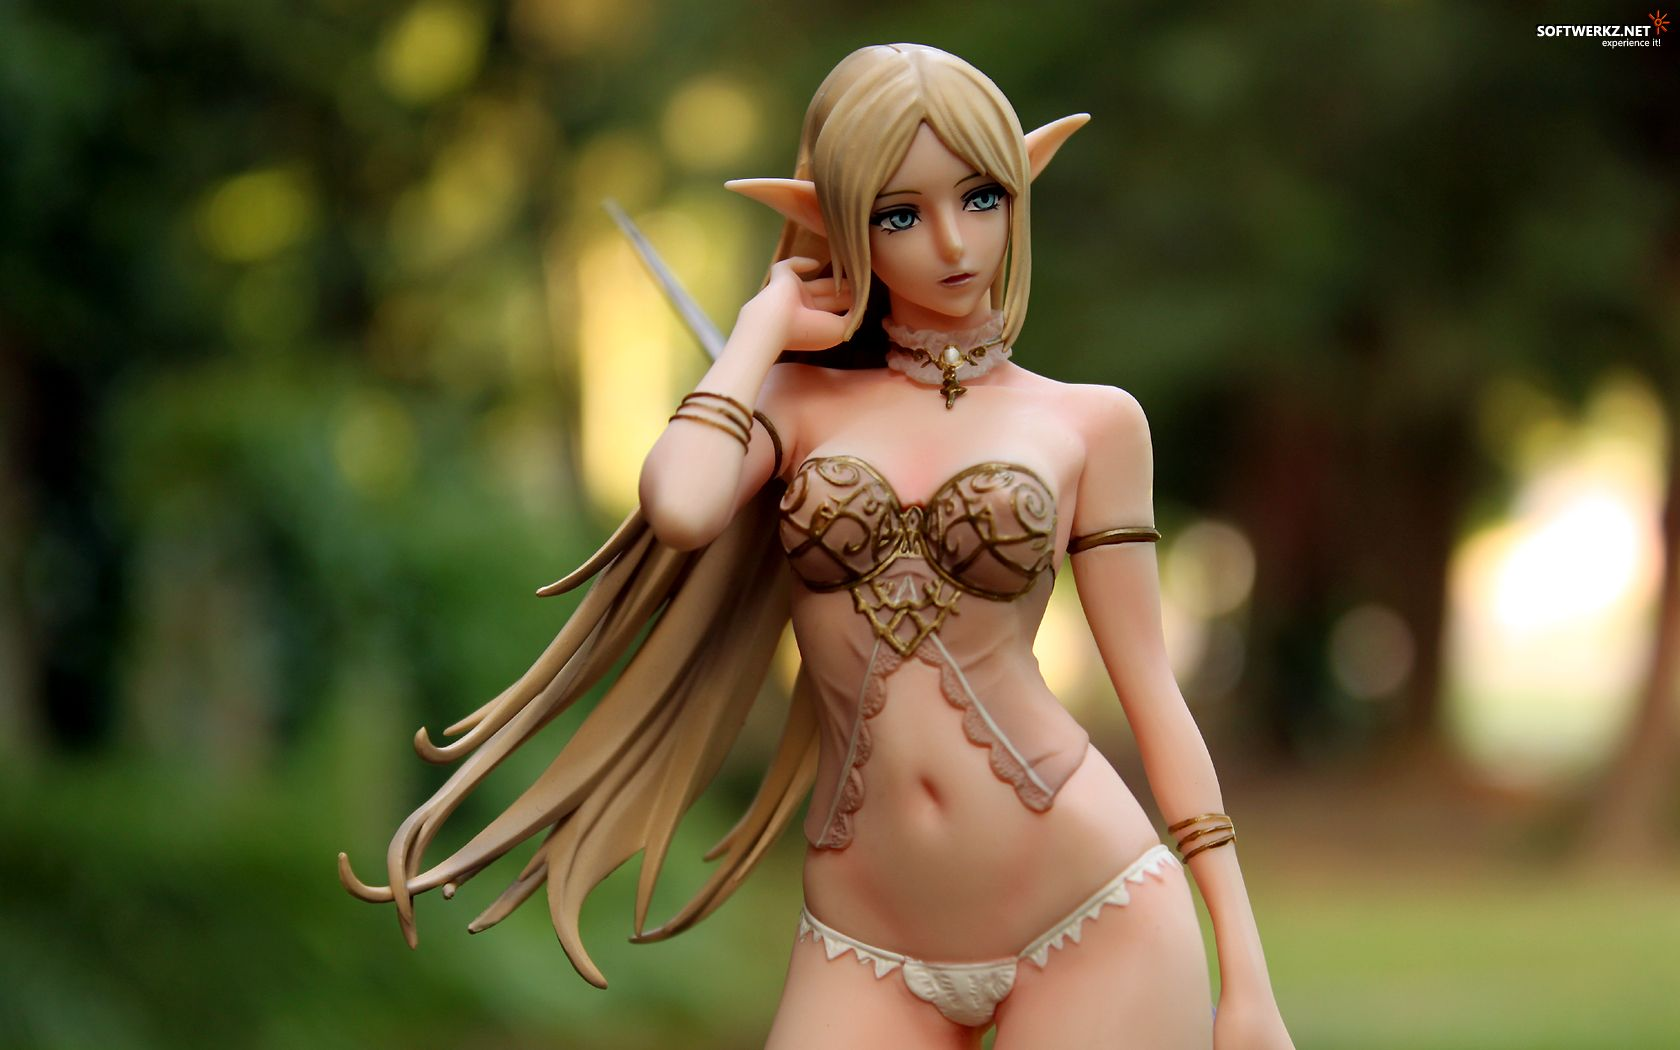 Sexy nude female elf adult picture